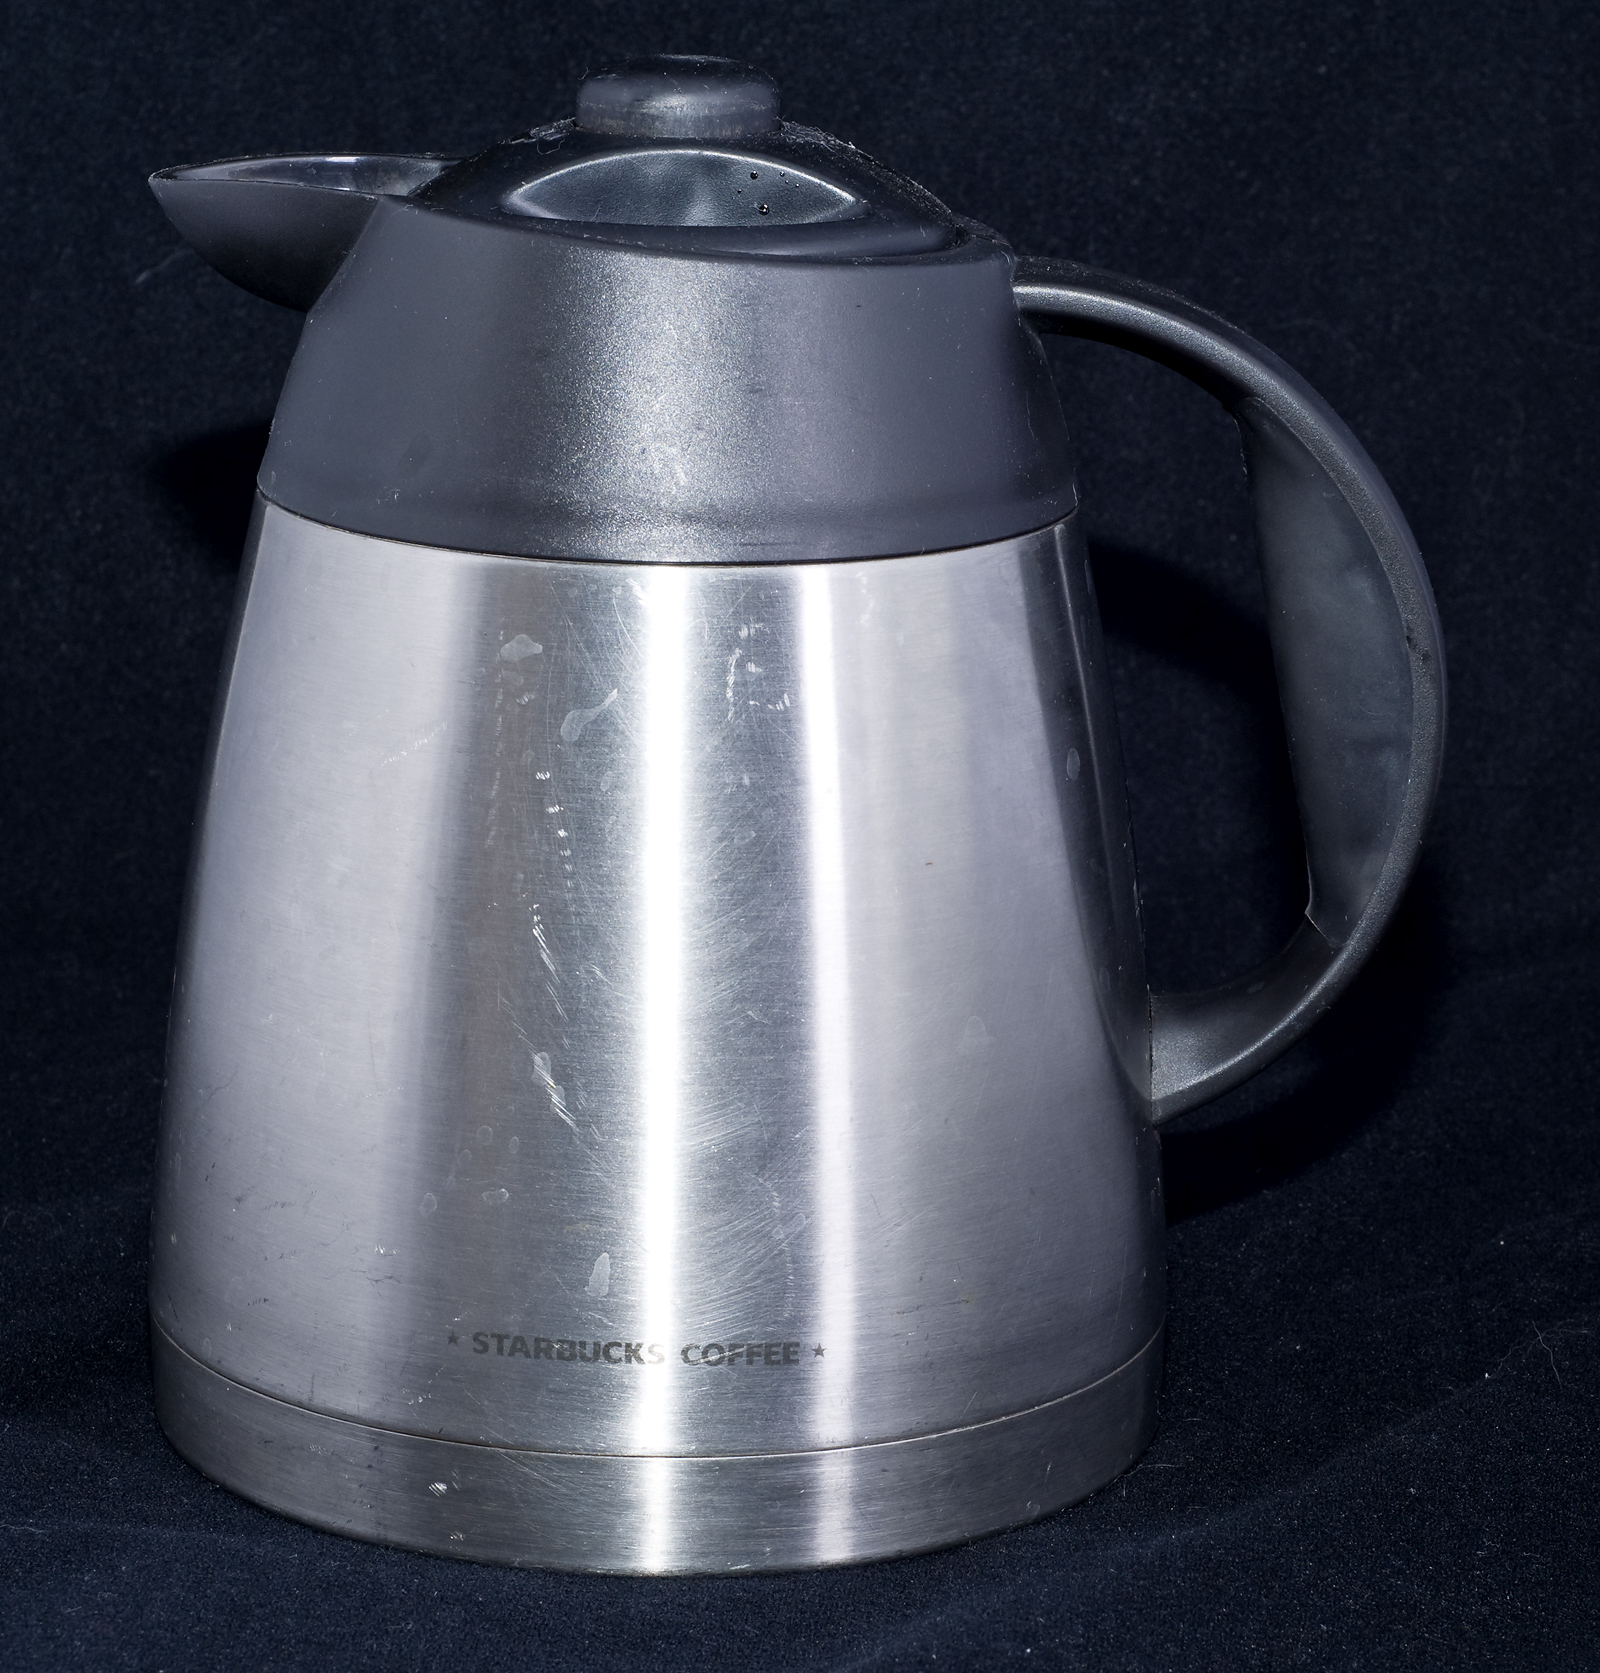 Stainless Steel Coffee Carafe Lookup Beforebuying